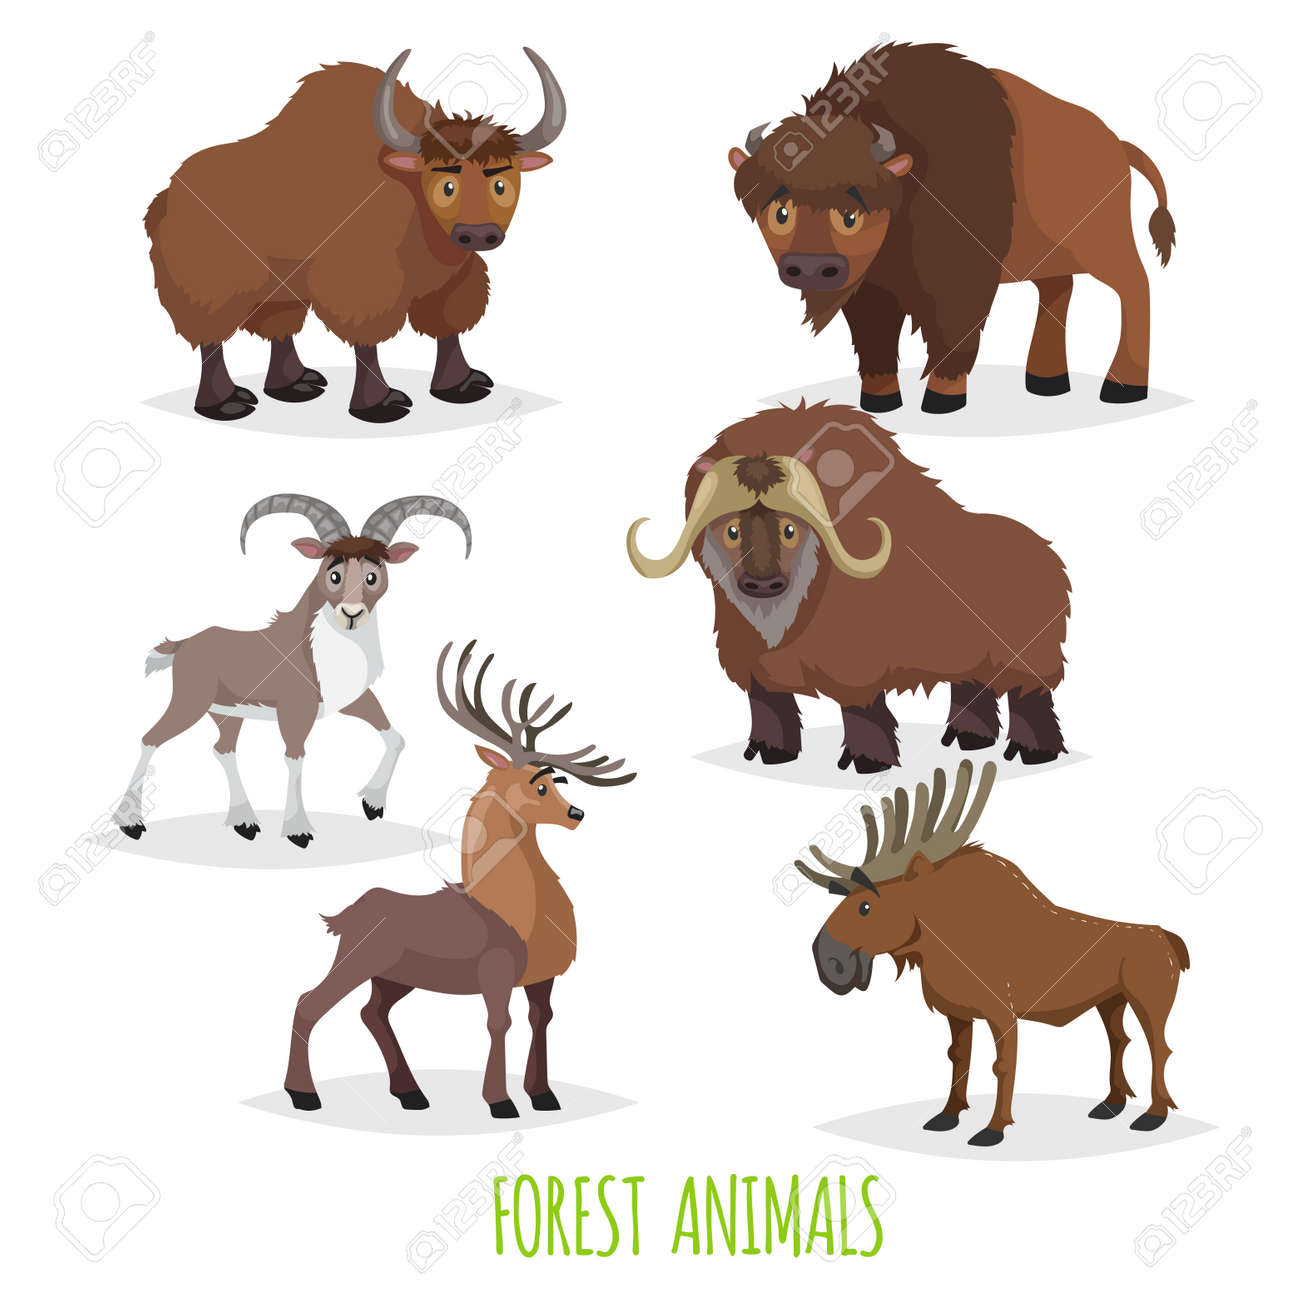 Set of woodland and forest hoofed and horned animals. Europe and North America fauna collection. Yak, bison, urial (mountain male sheep), musk ox, deer and moose. - 156128330